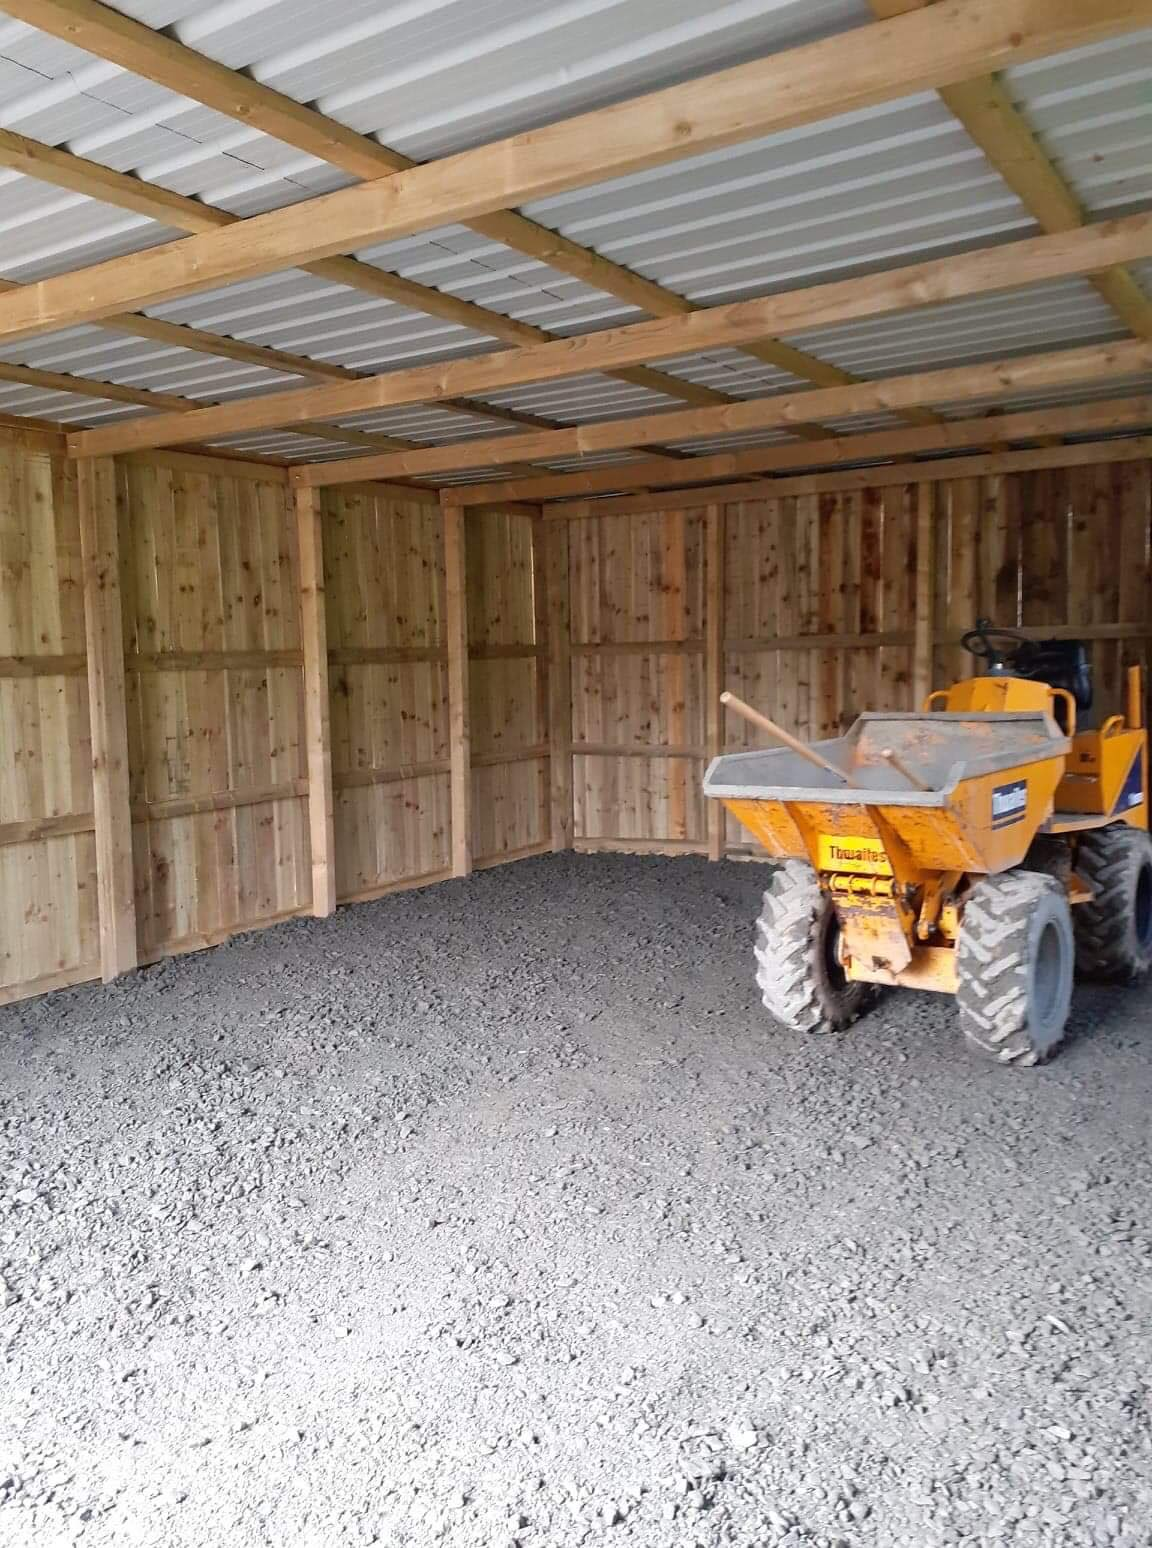 Inside the Storage shed, with small dumper truck